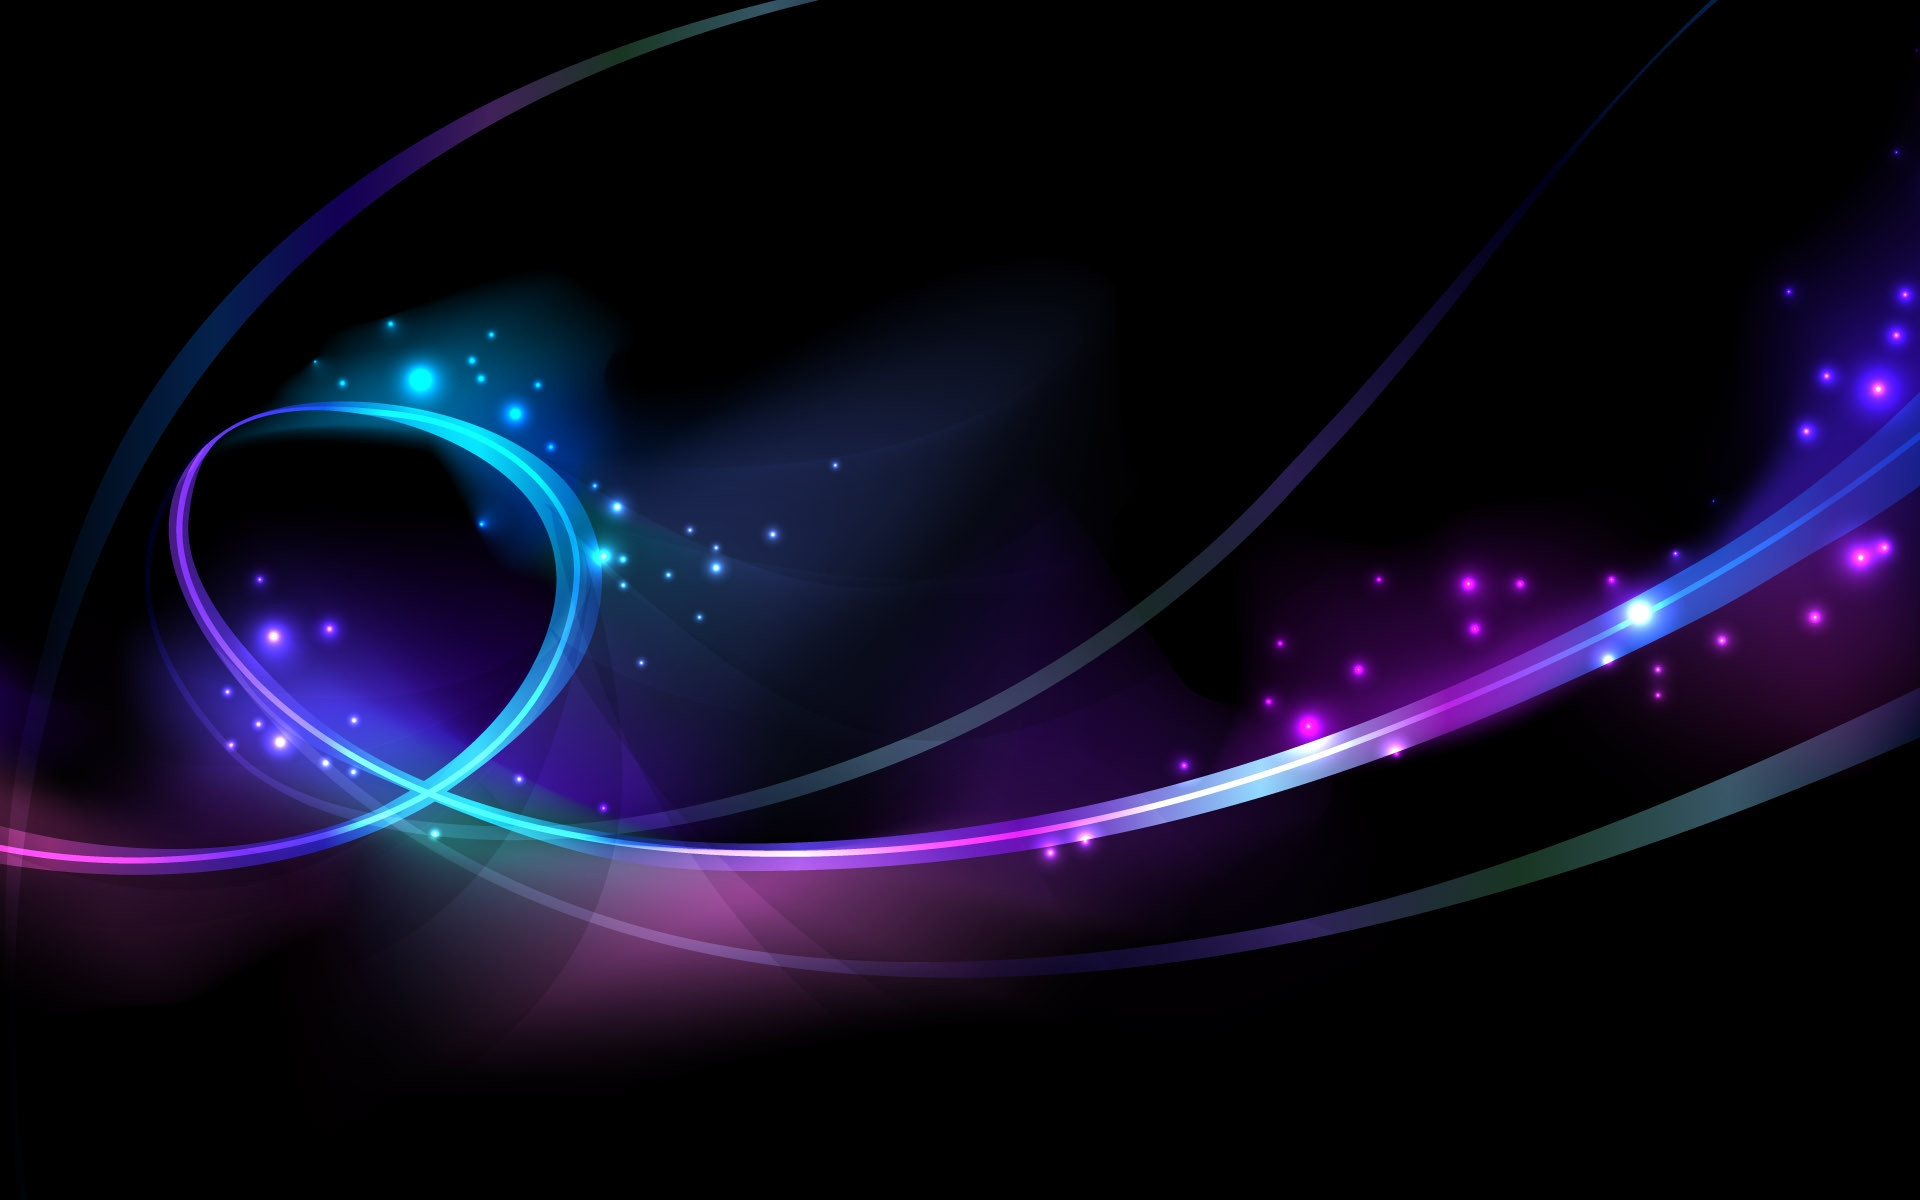 Cool Desktop Backgrounds That Move Group (60+)